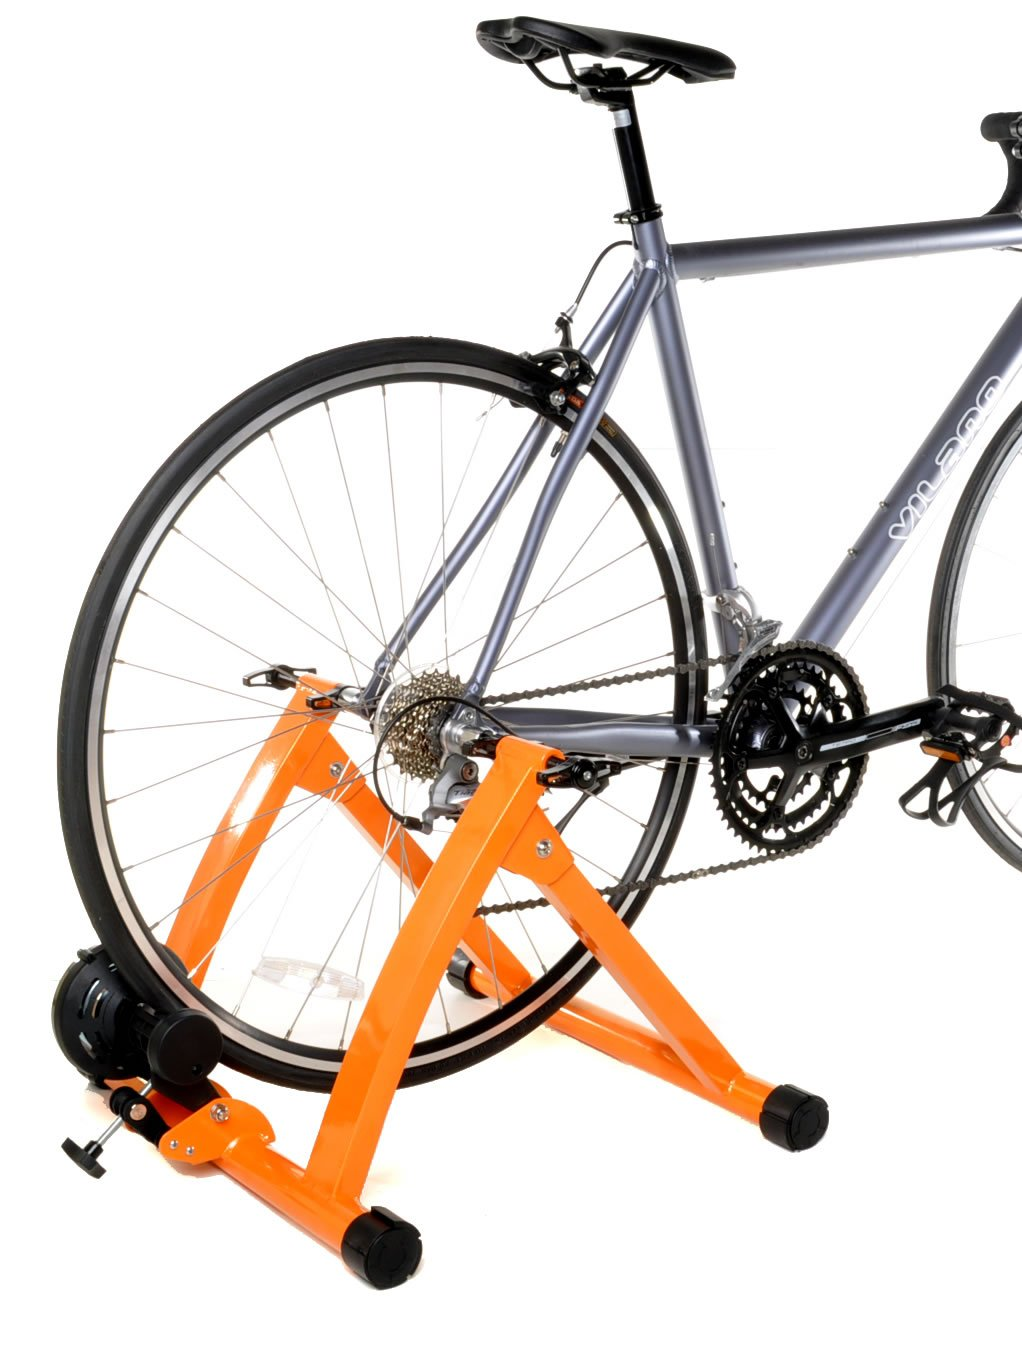 Conquer Indoor Bike Trainer Portable Exercise Bicycle Magnetic Stand by Conquer (Image #4)